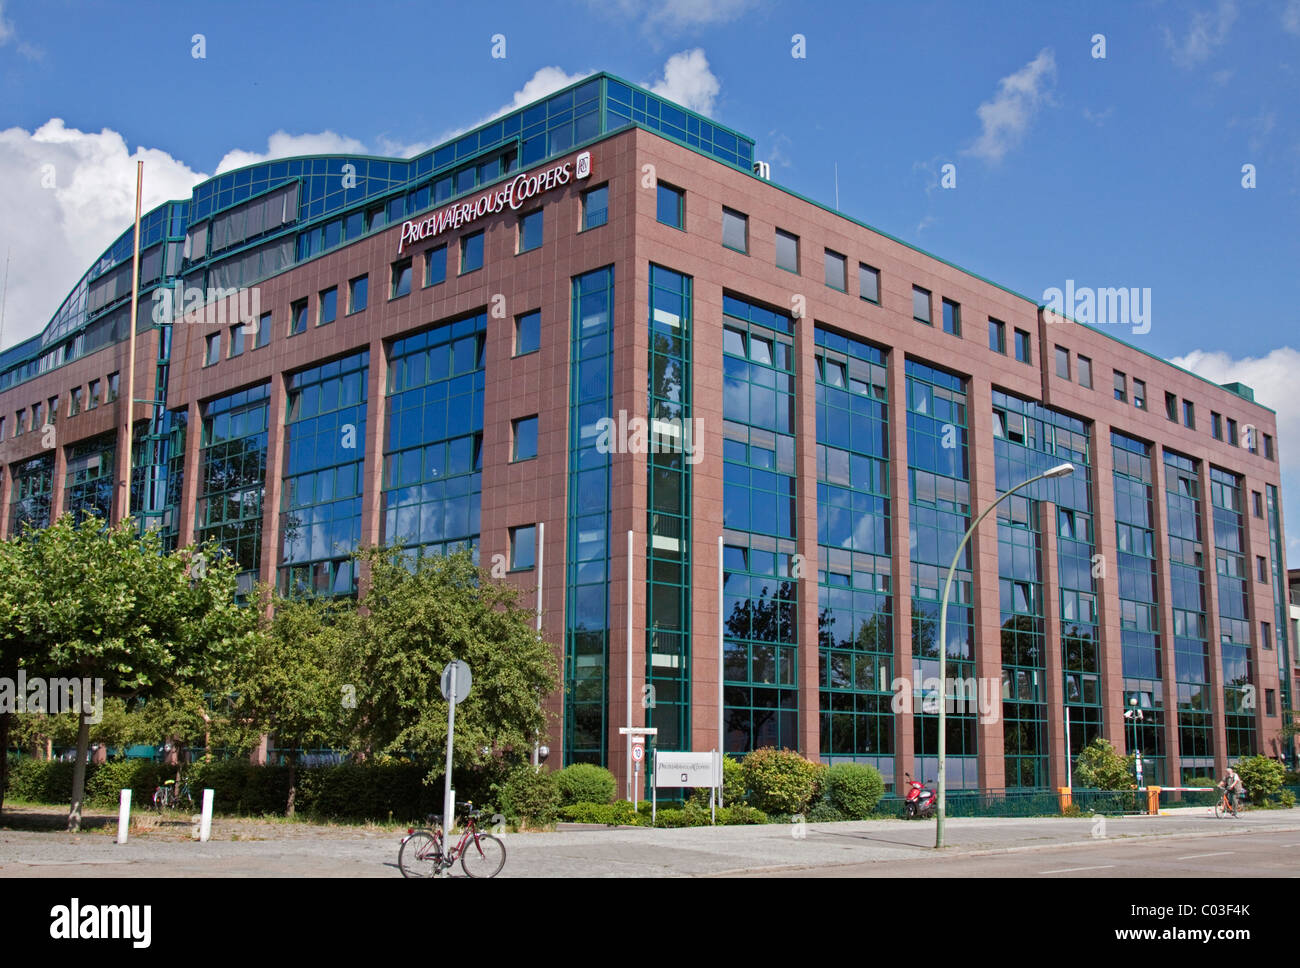 PricewaterhouseCoopers corporation, auditing company, PwC, branch office in Berlin, Germany, Europe - Stock Image